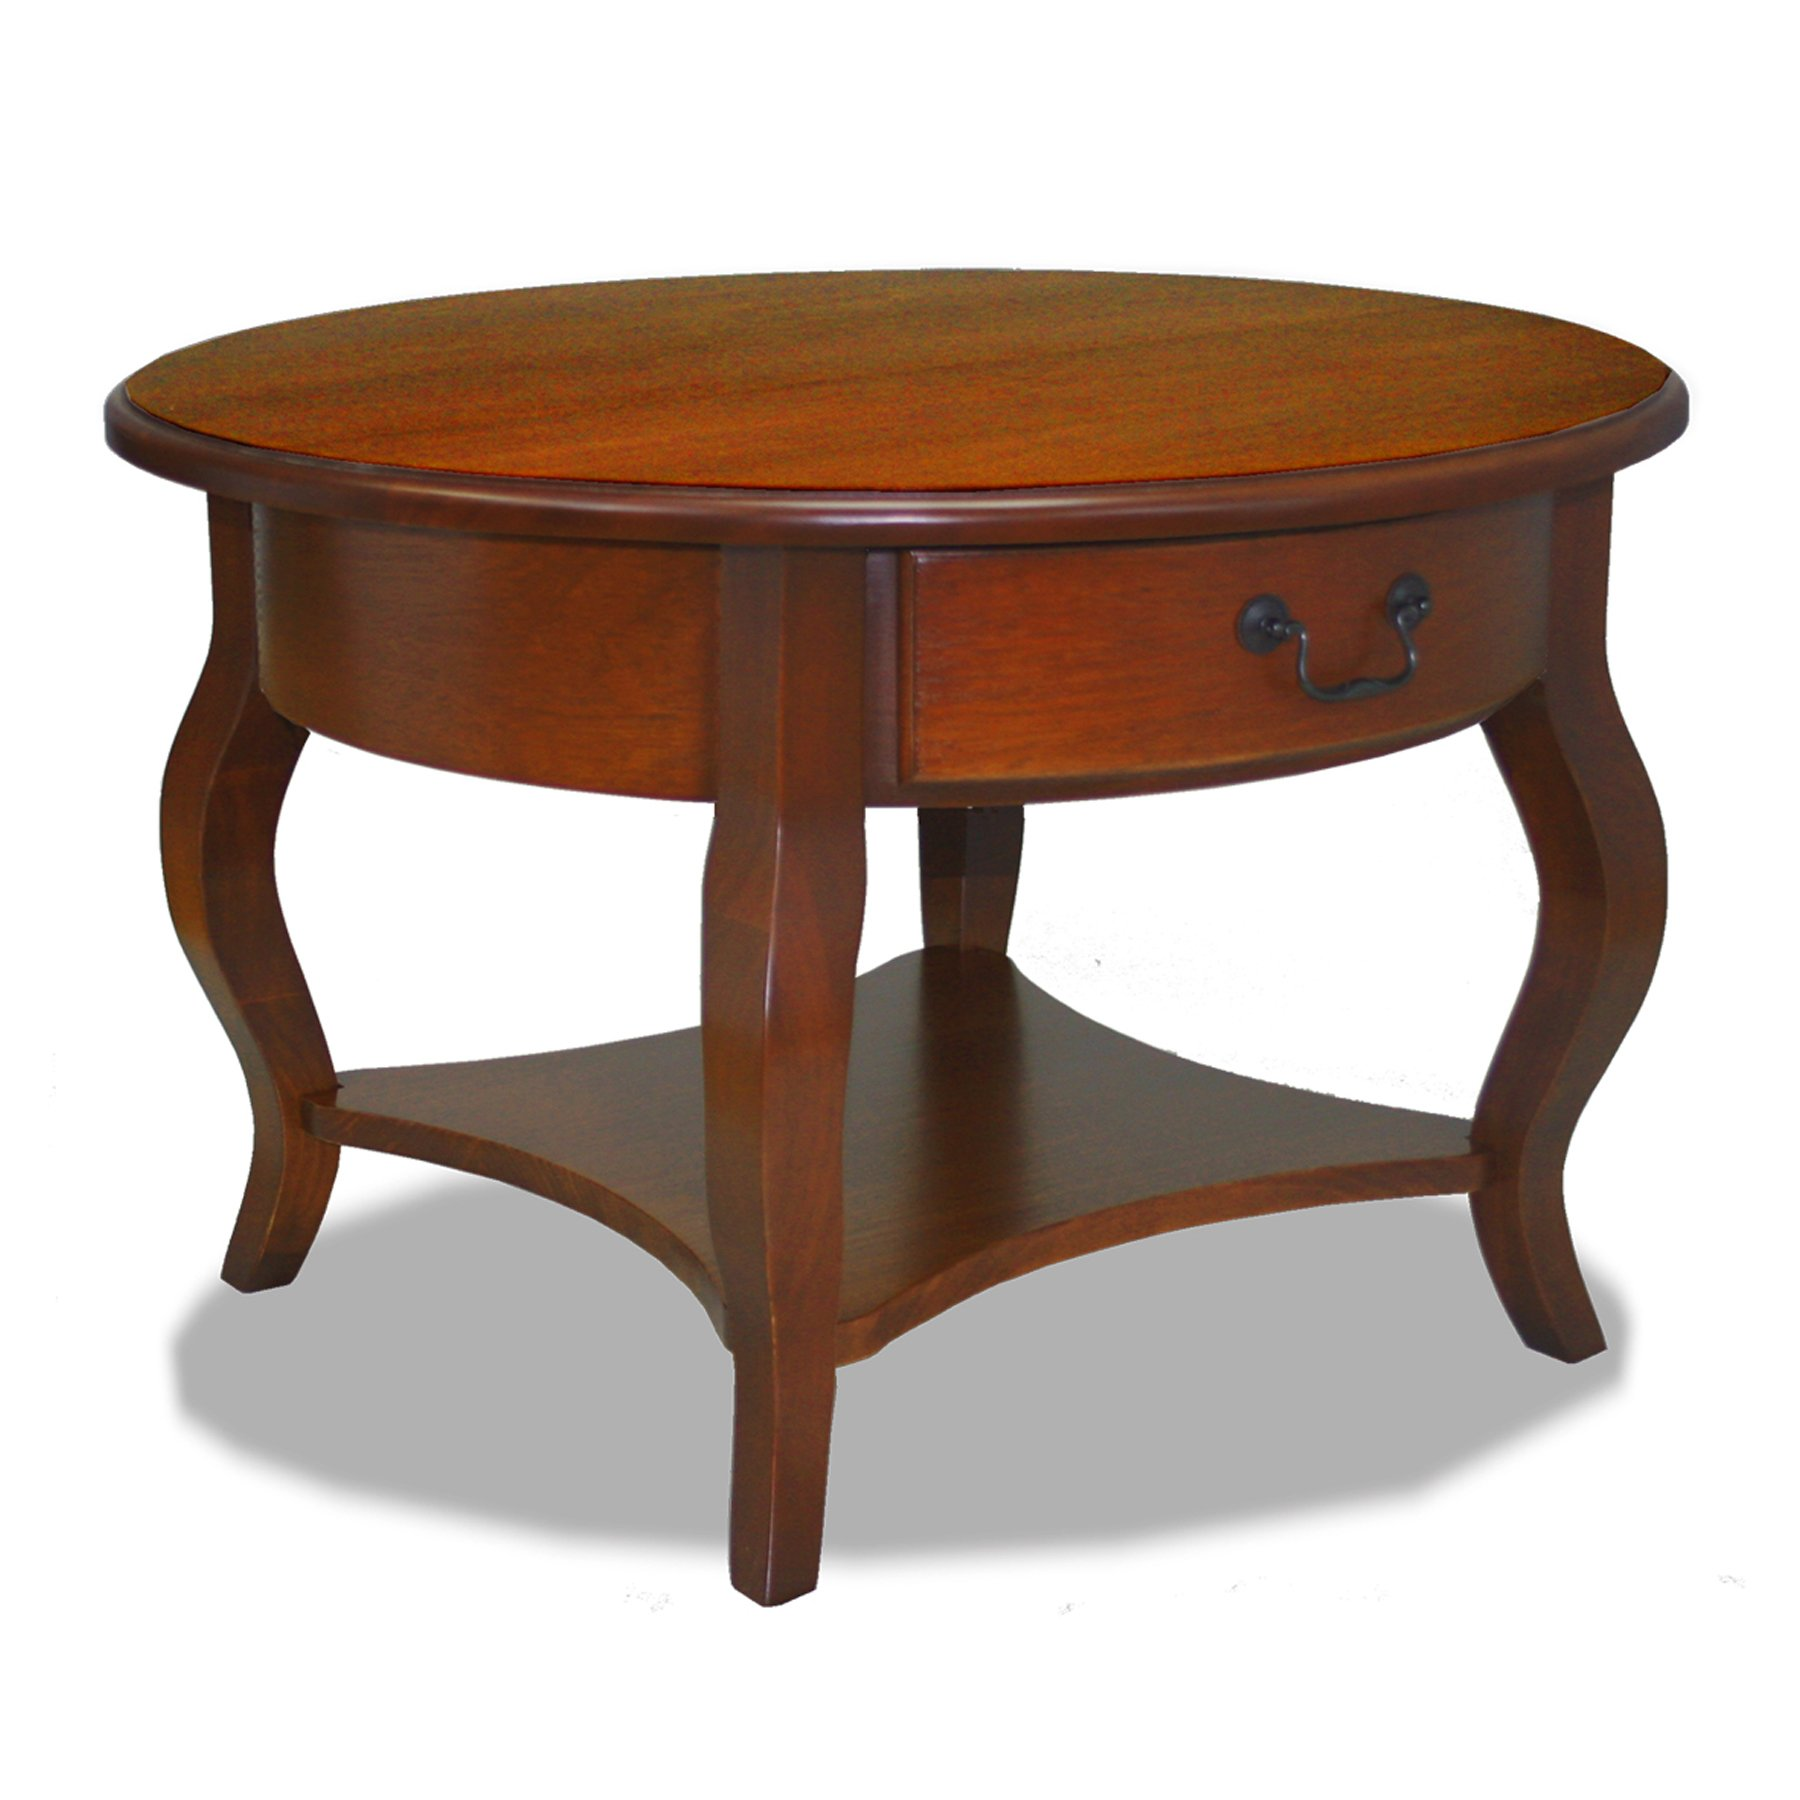 Leick French Countryside Round Storage Coffee Table Brown